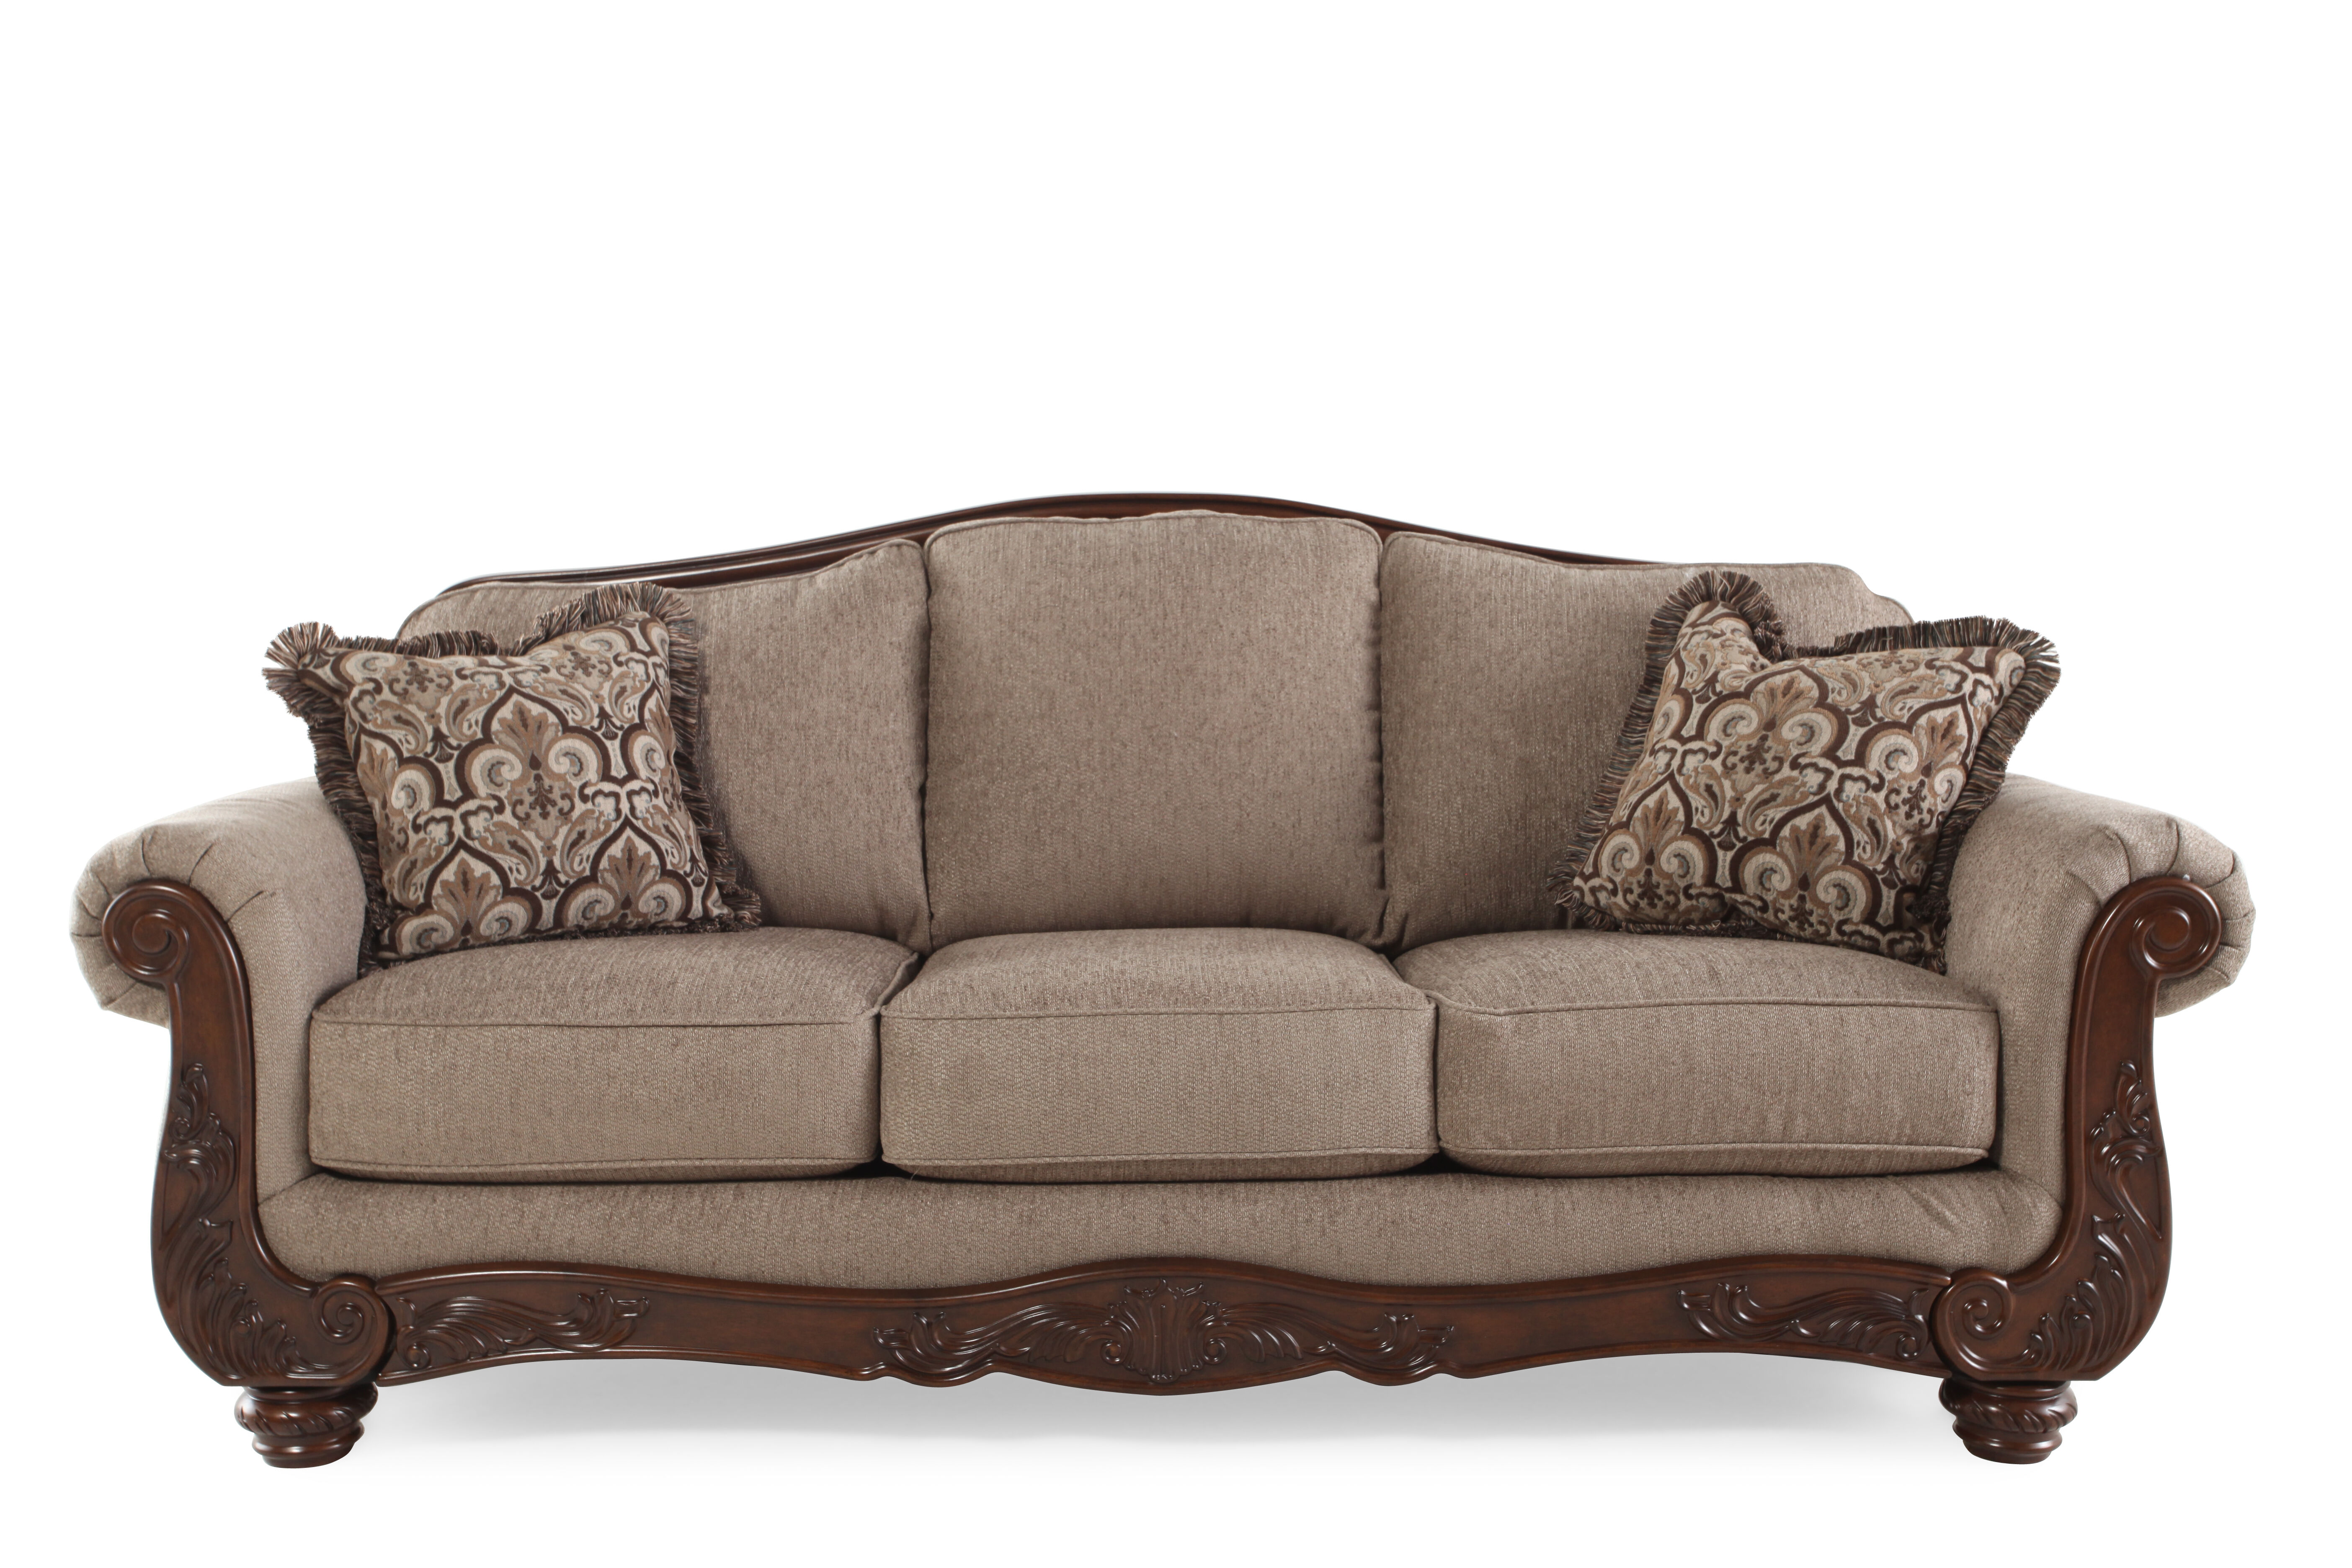 Captivating Traditional Rolled Arm 86u0026quot; Sofa In Cocoa Part 12